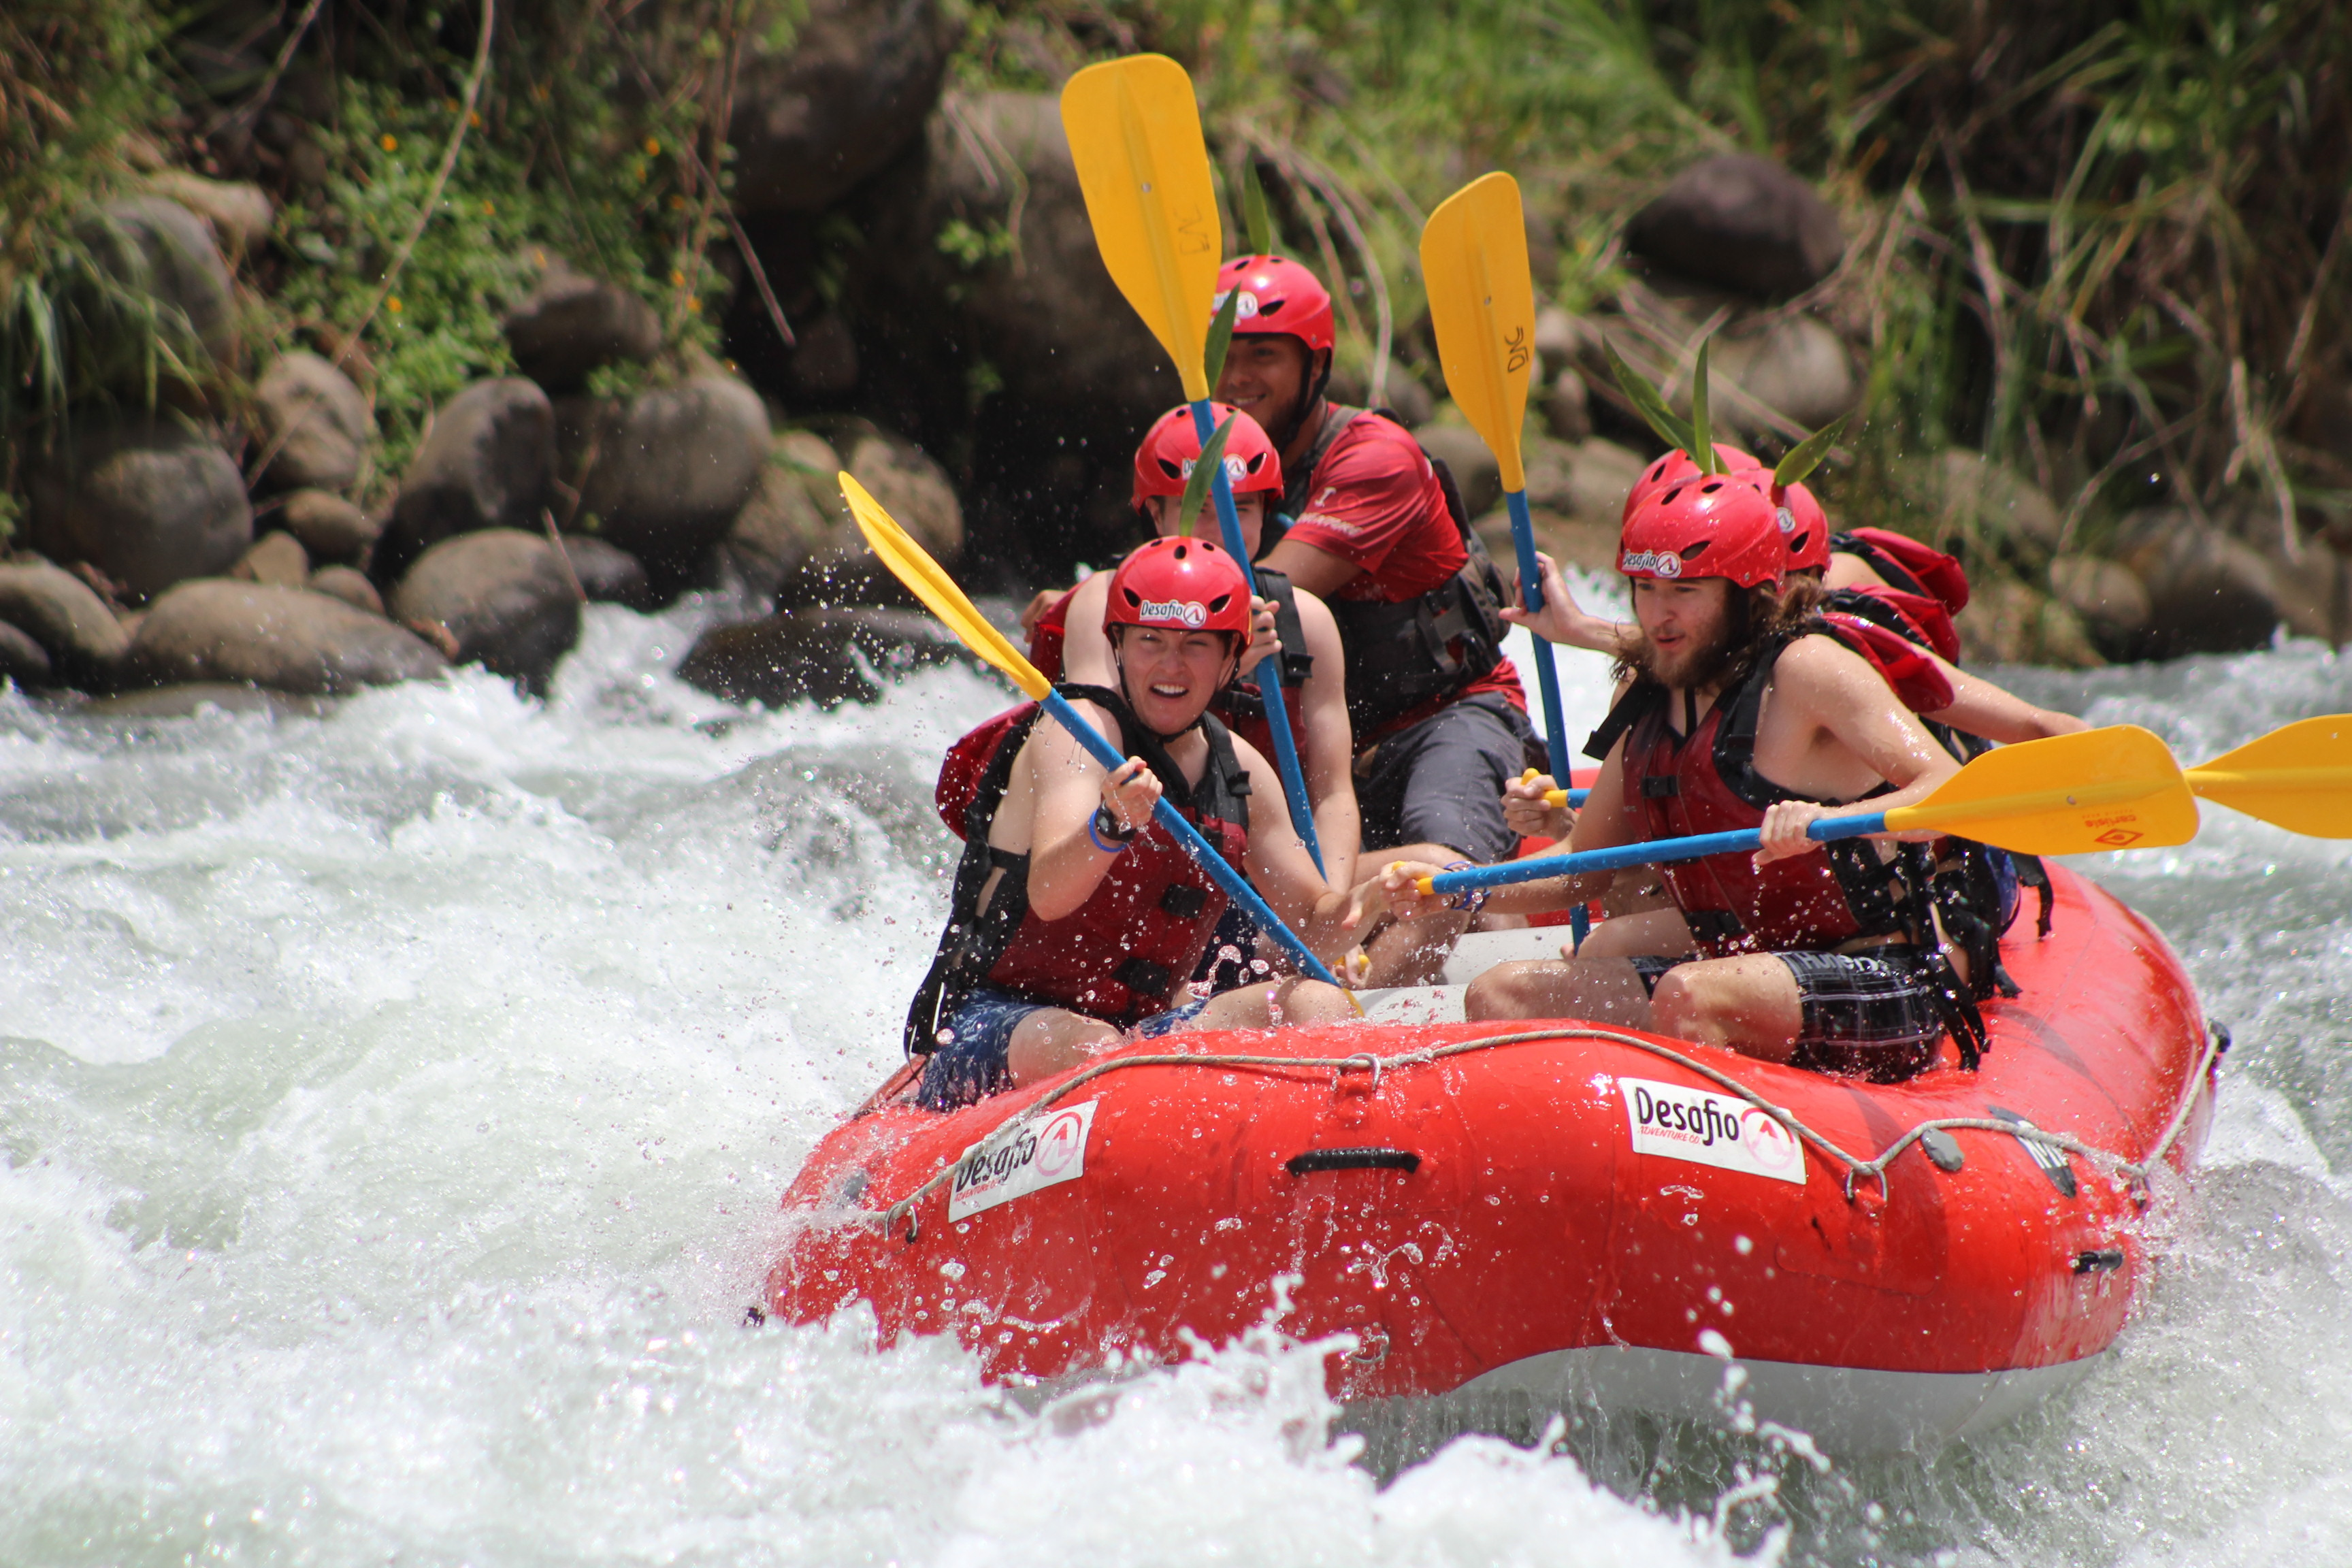 So much fun rafting in Costa Rica with Desafio.